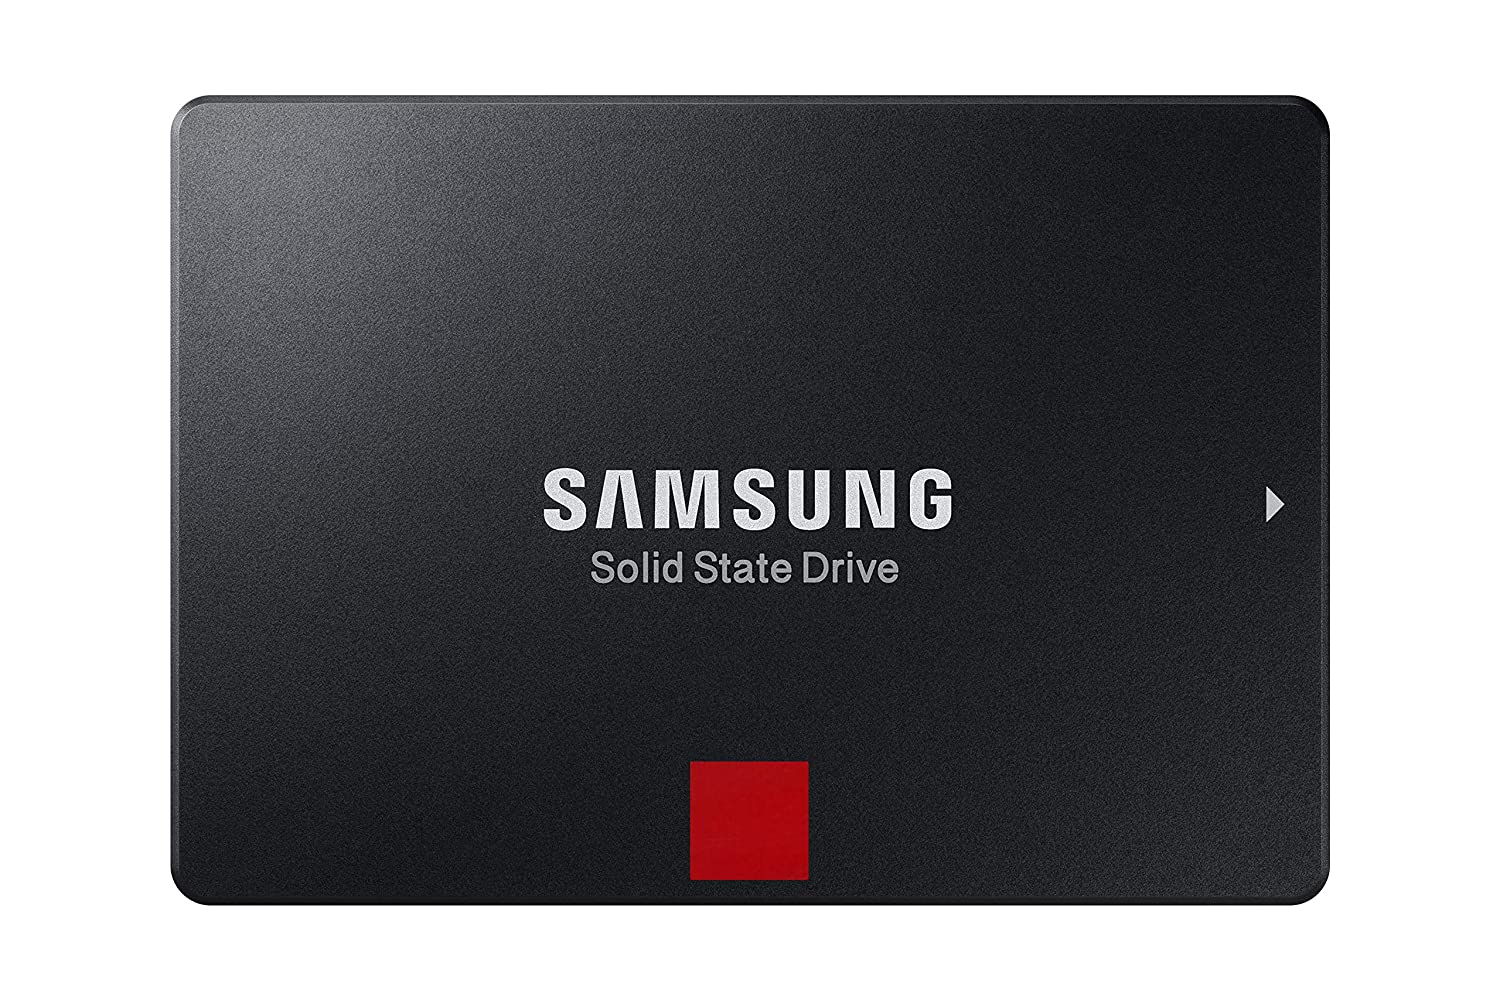 Samsung 860 PRO SSD 256GB - 2.5 Inch SATA III Internal Solid State Drive with V-NAND Technology (MZ-76P256BW)